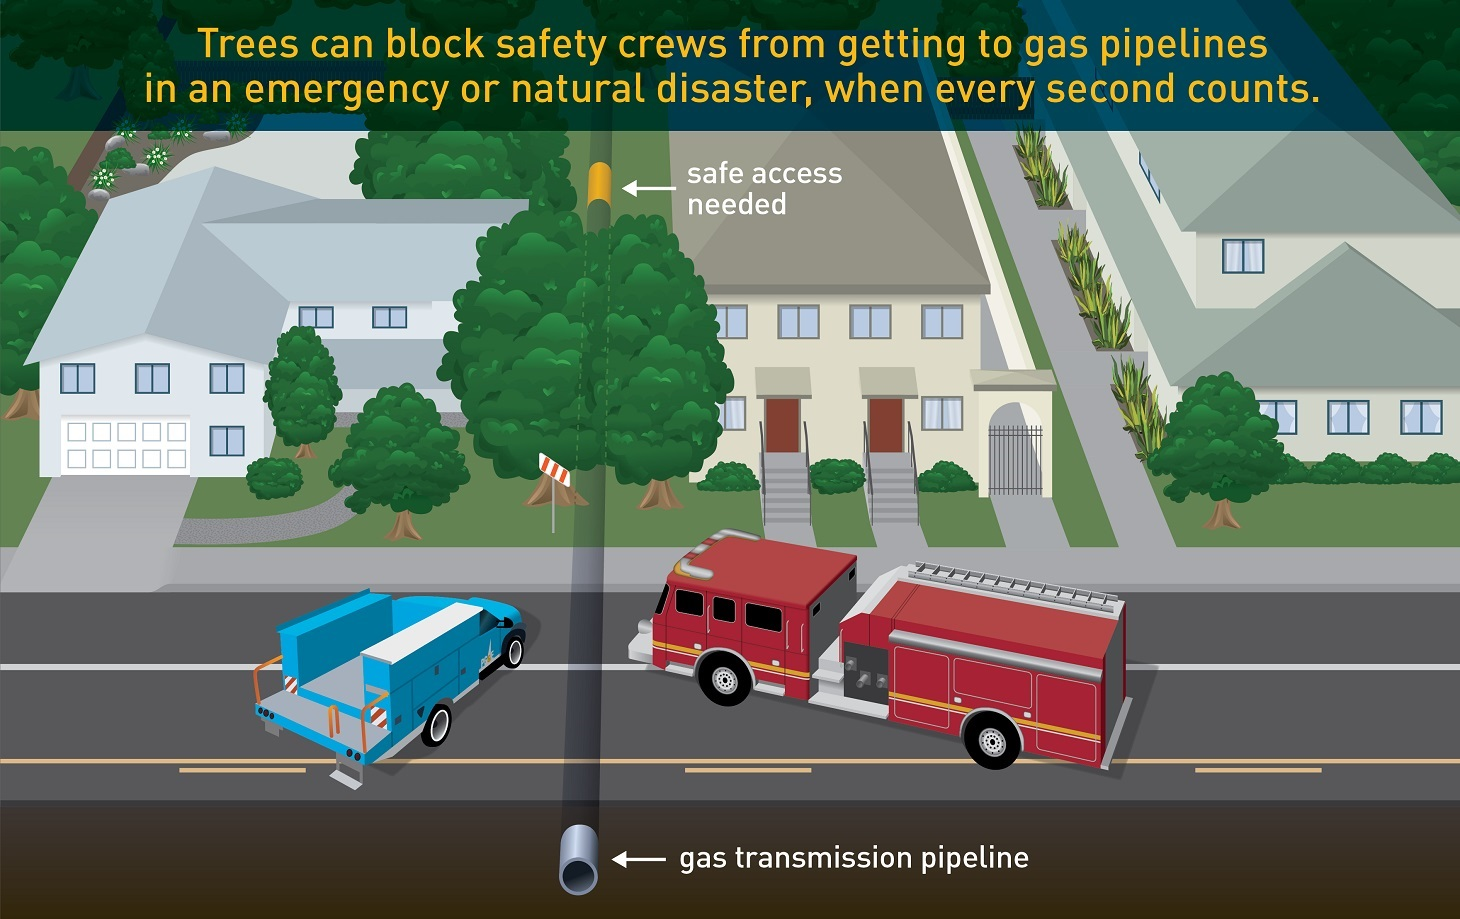 Trees can block safety crews from getting to gas pipelines in an emergency or natural disaster, when every second counts.